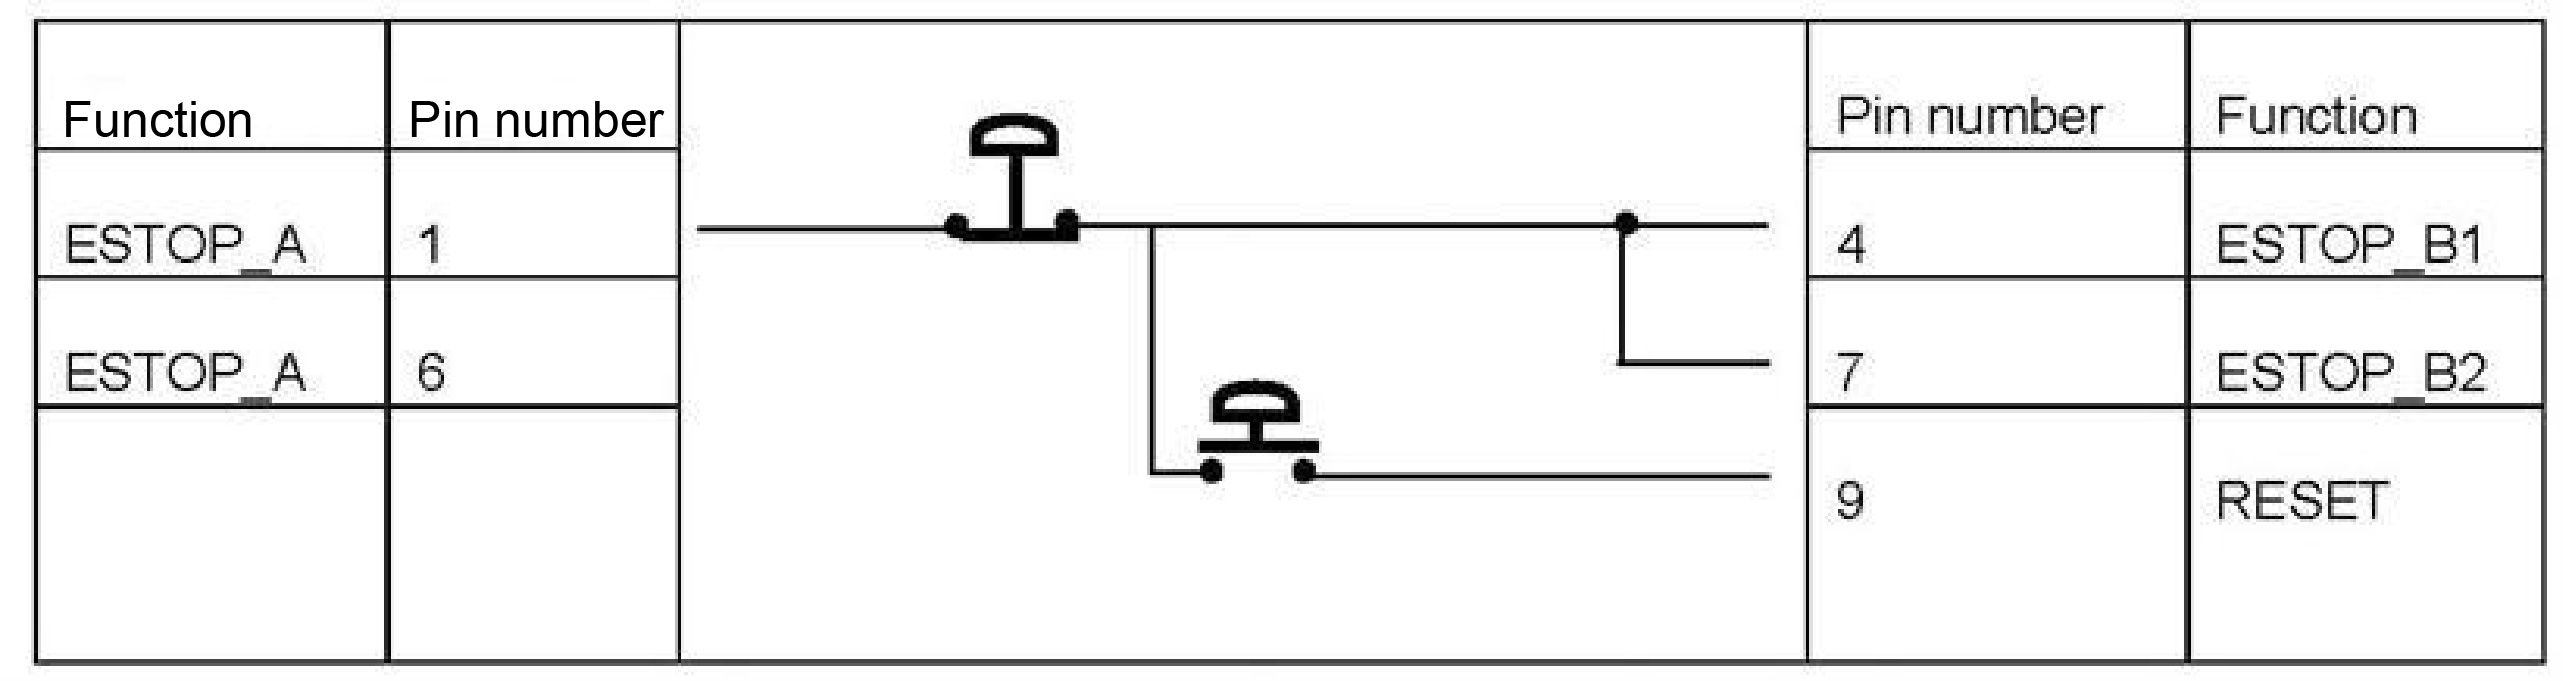 Emergency Stop Wiring Standard - Wiring Solutions on honeywell limit switch wire diagram, emergency stop switch, emergency stop cable, emergency stop safety, emergency stop fuse, emergency stop relay, spdt limit switch diagram, emergency stop controls, emergency stop buttons wiring 2, e stop circuit diagram, start stop schematic diagram, emergency stop plug, emergency stop assembly, emergency stop cover, emergency stop circuit, start stop station diagram, emergency stop valve,